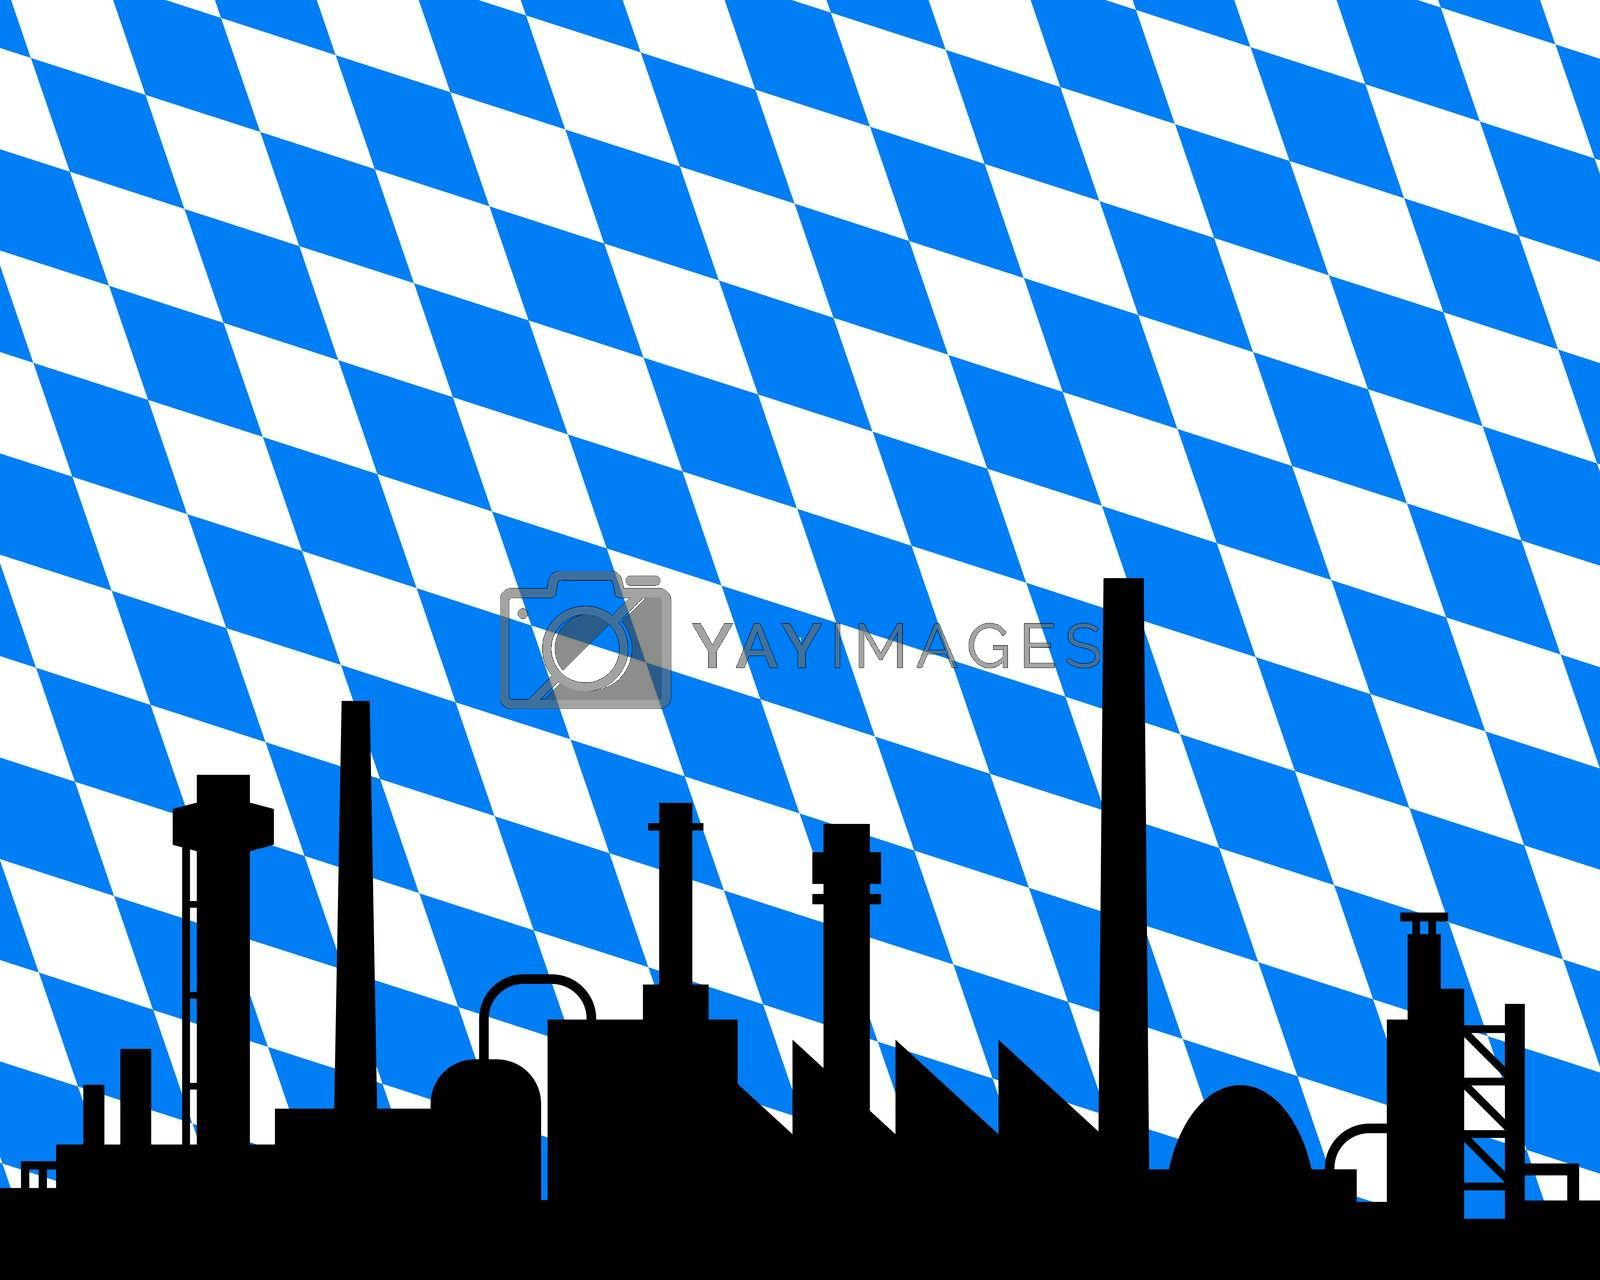 Industry and flag of Bavaria